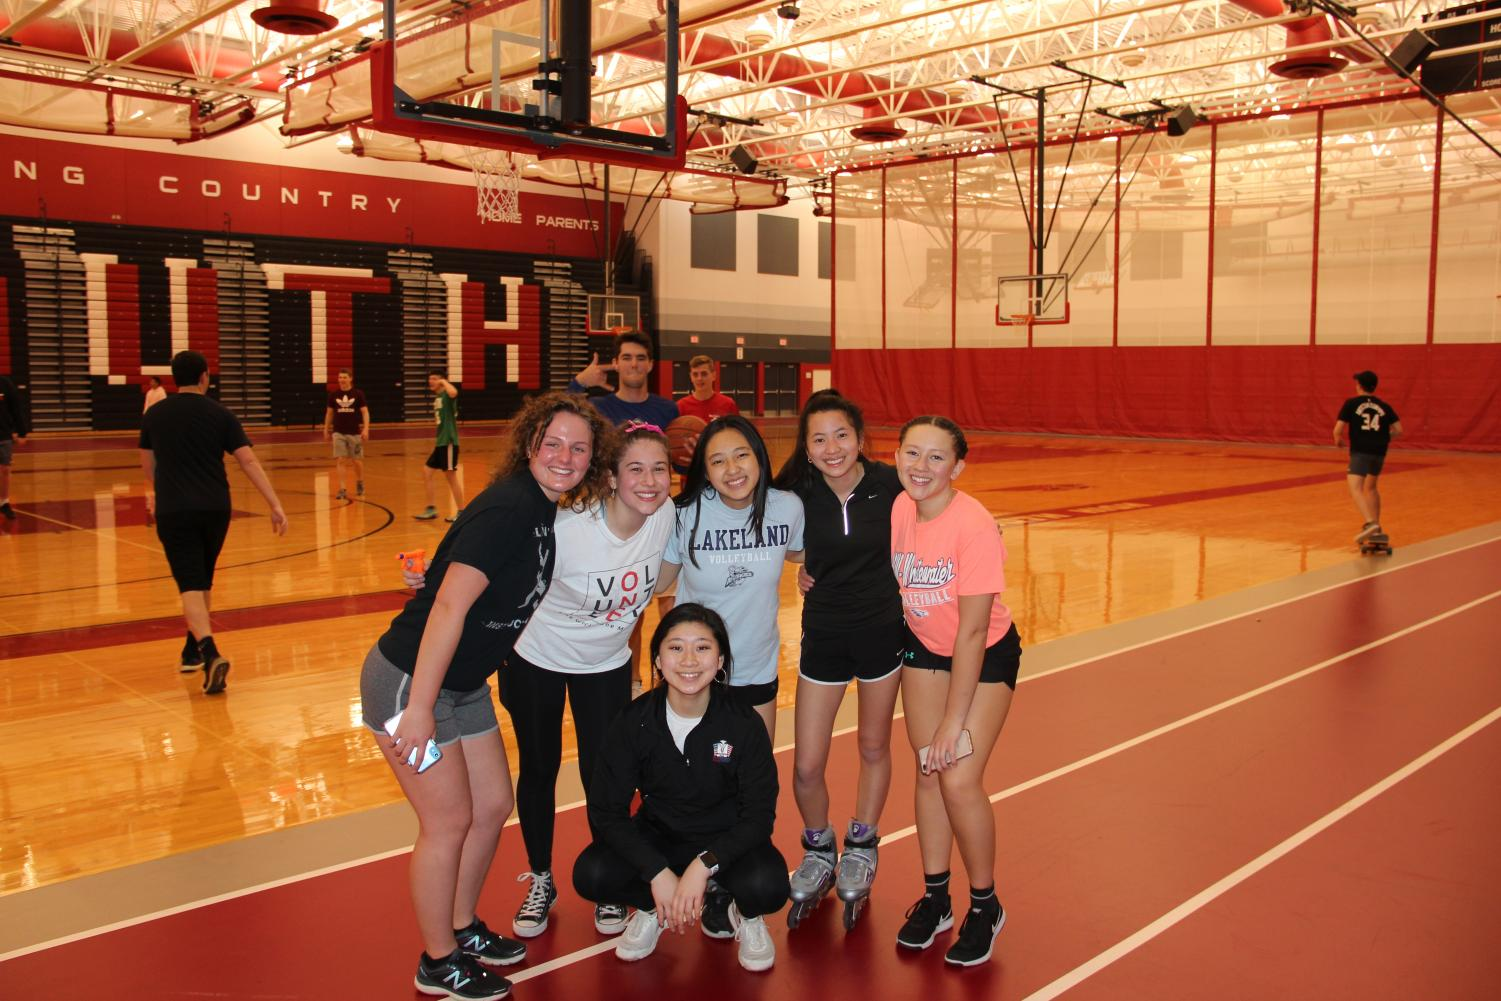 Fieldhouse After Hours: To kick off the night seniors participated in a variety of activities in the Fieldhouse. These activities included basketball and rollerblading.